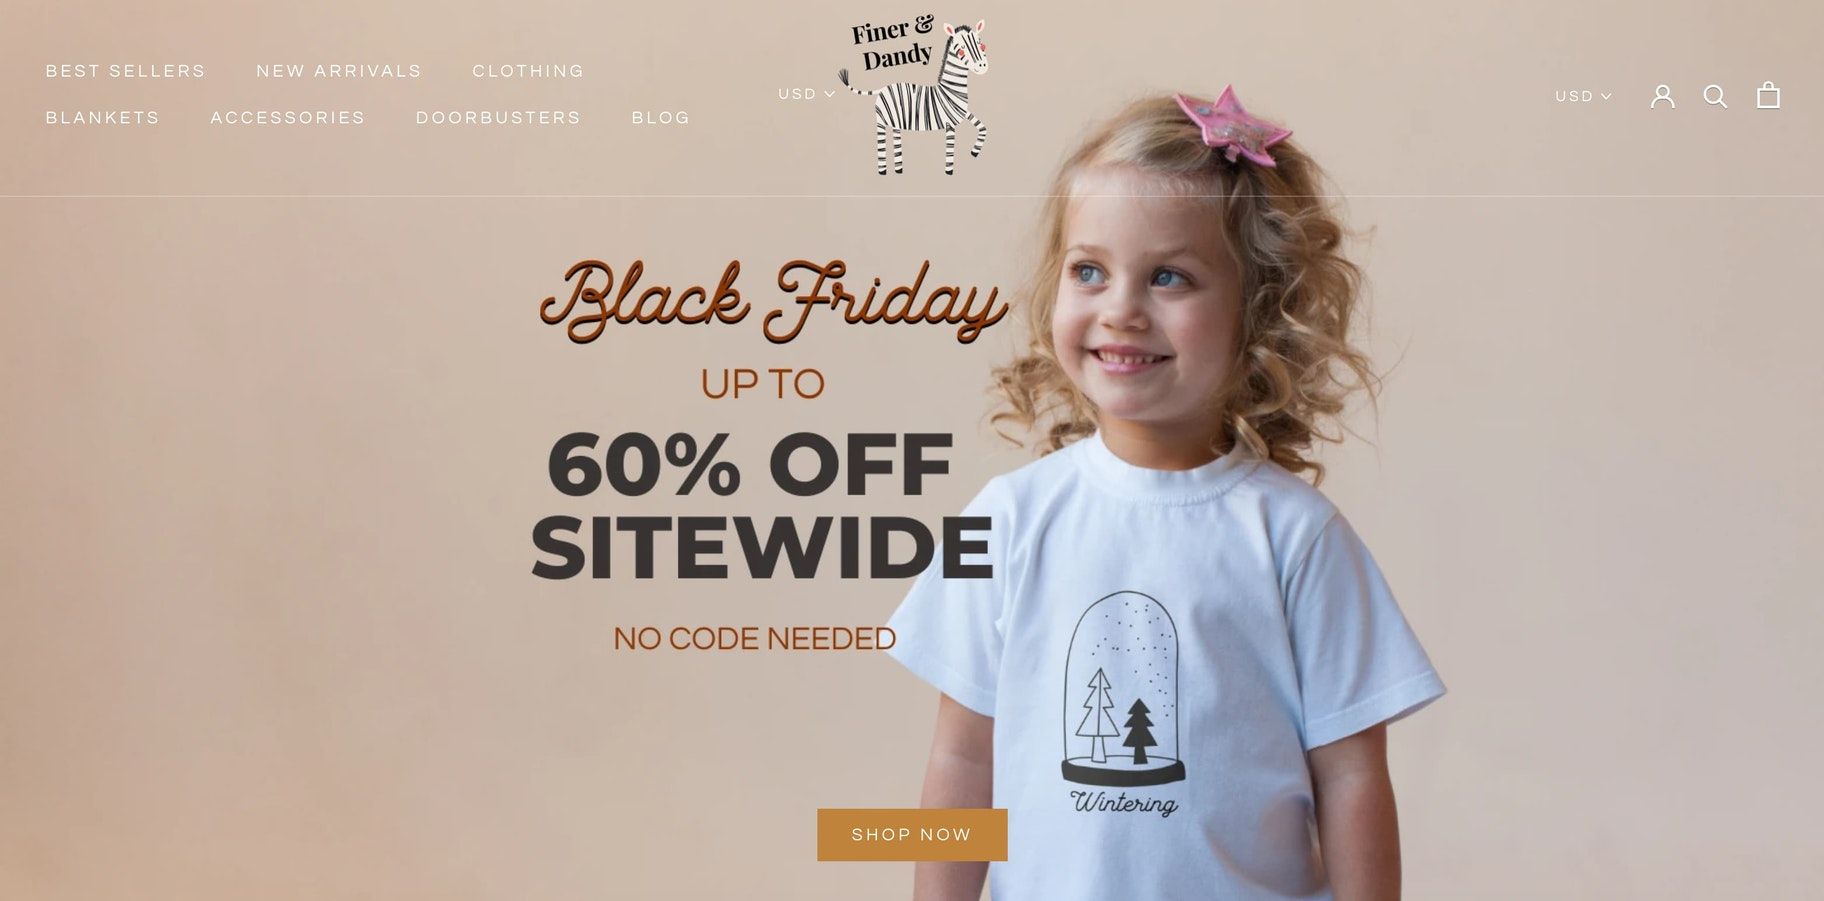 Finer and Dandy homepage with Black Friday sale